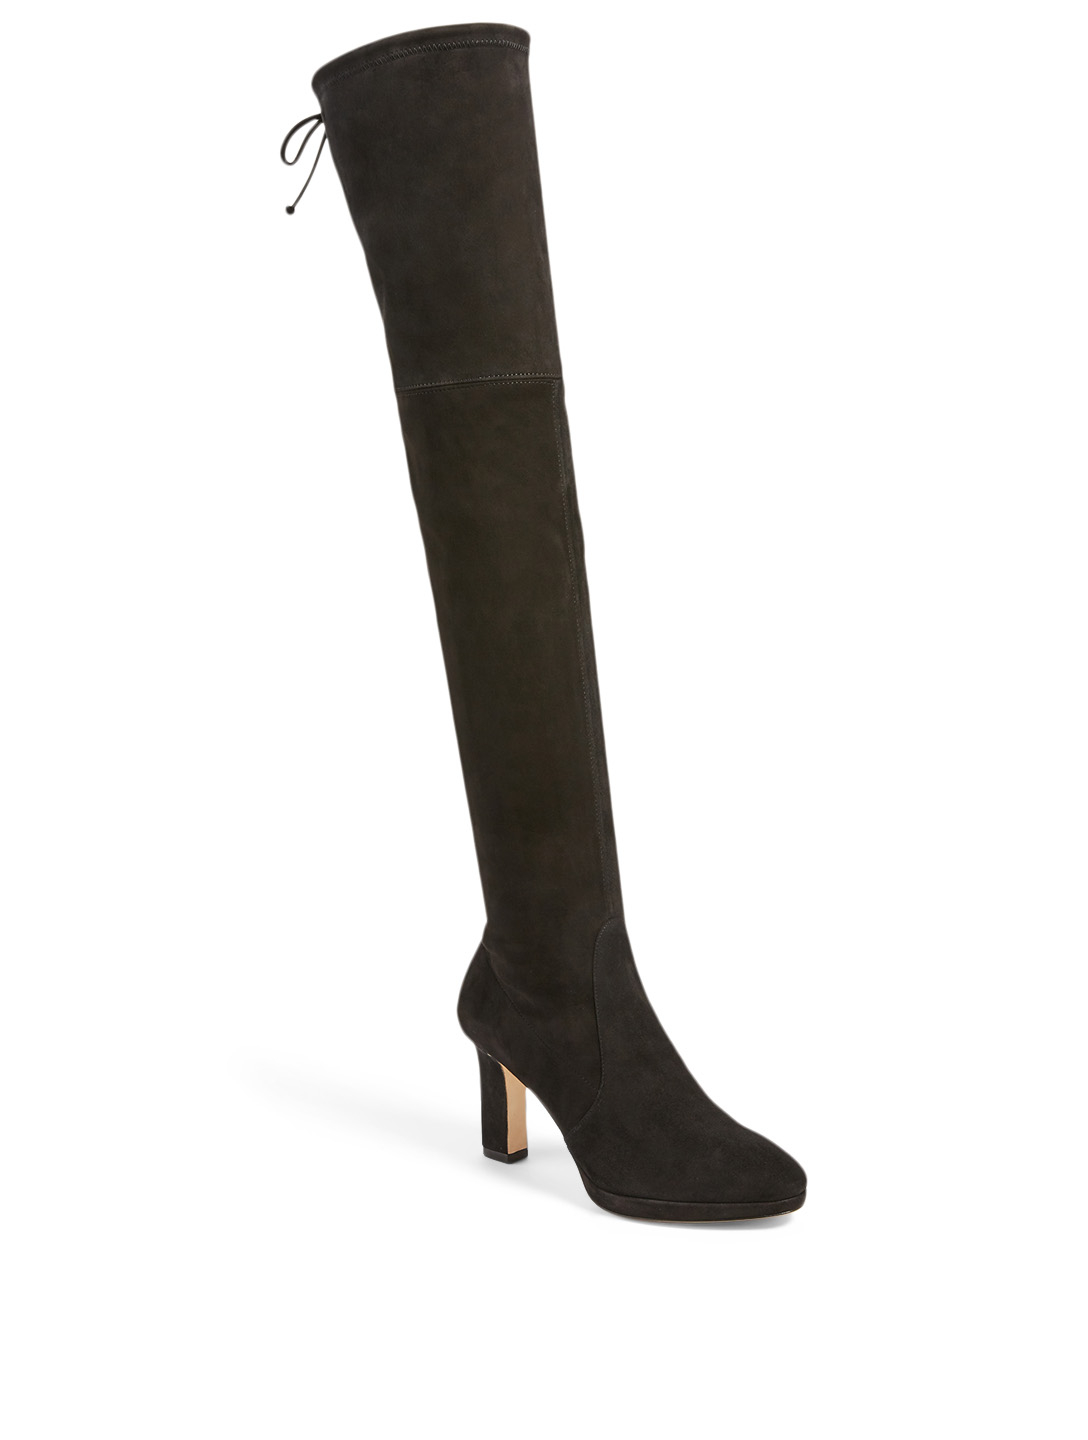 STUART WEITZMAN Ledyland Suede Heeled Over-The-Knee Boots Women's Black